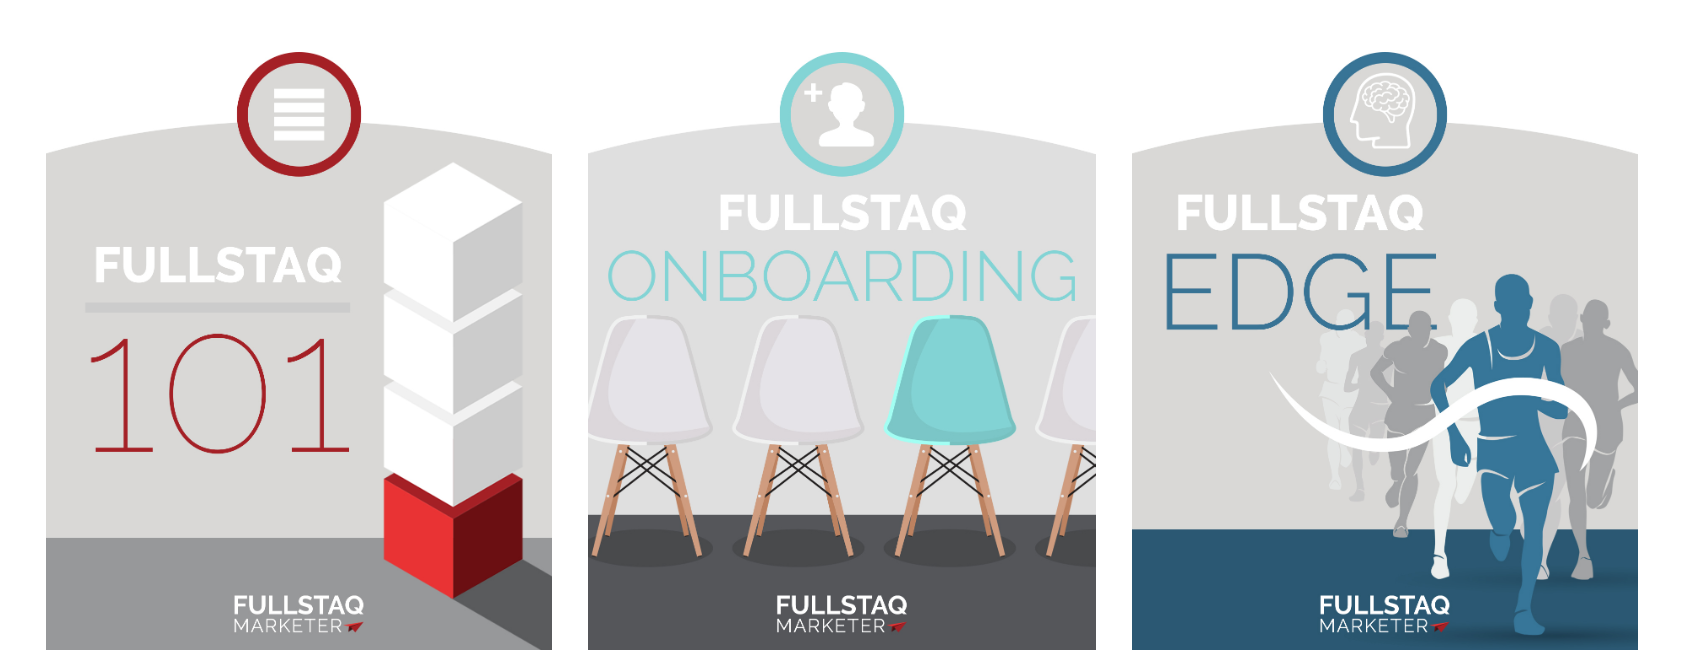 Fullstaq Marketer Features